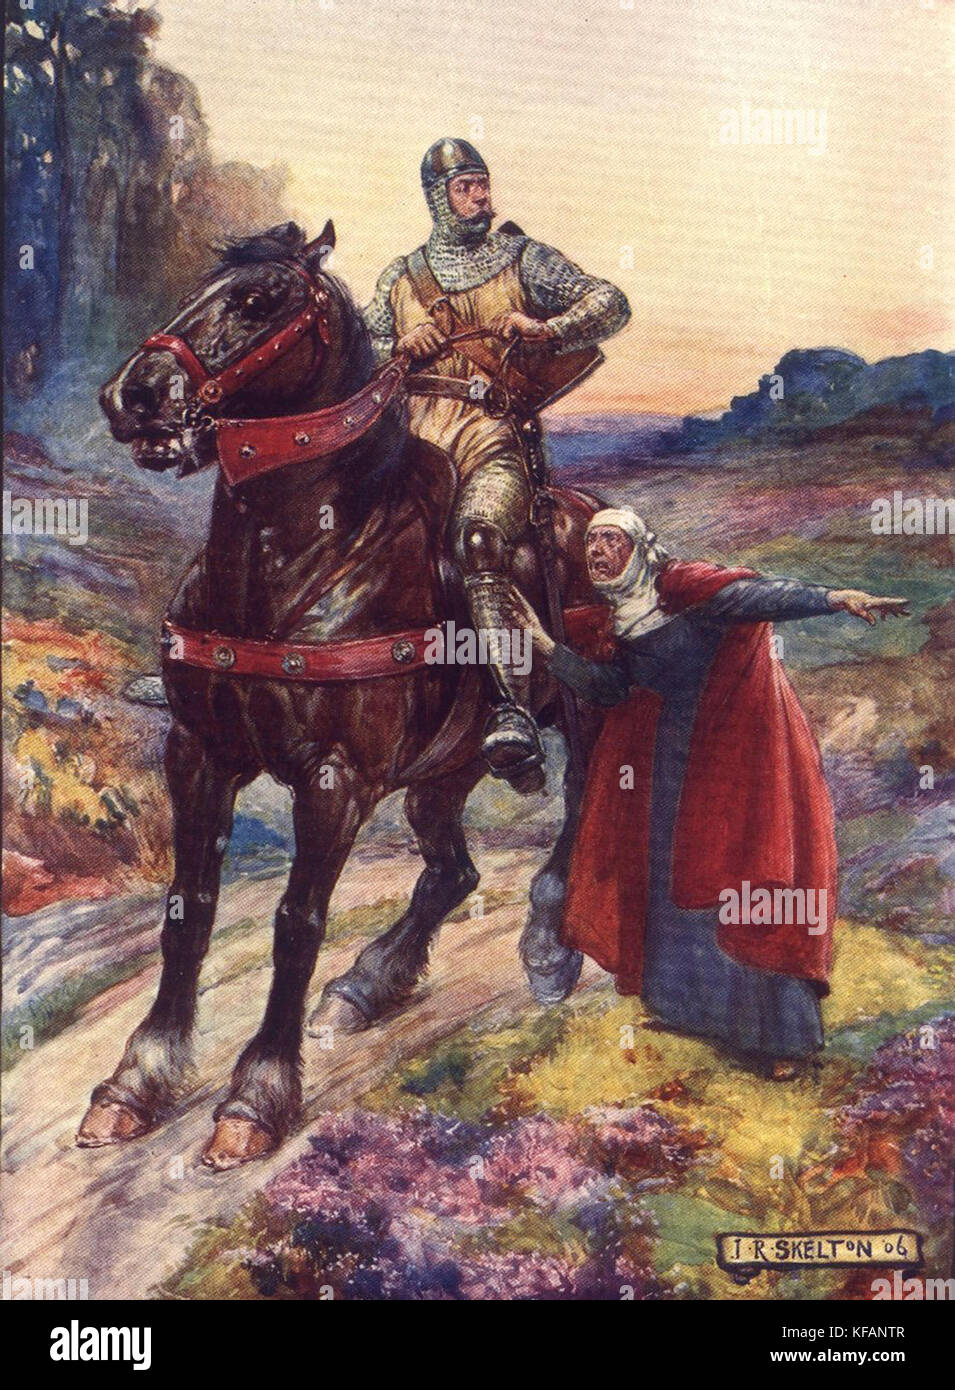 Sir William Wallace, Scottish knight who became one of the main leaders during the Wars of Scottish Independence - Stock Image